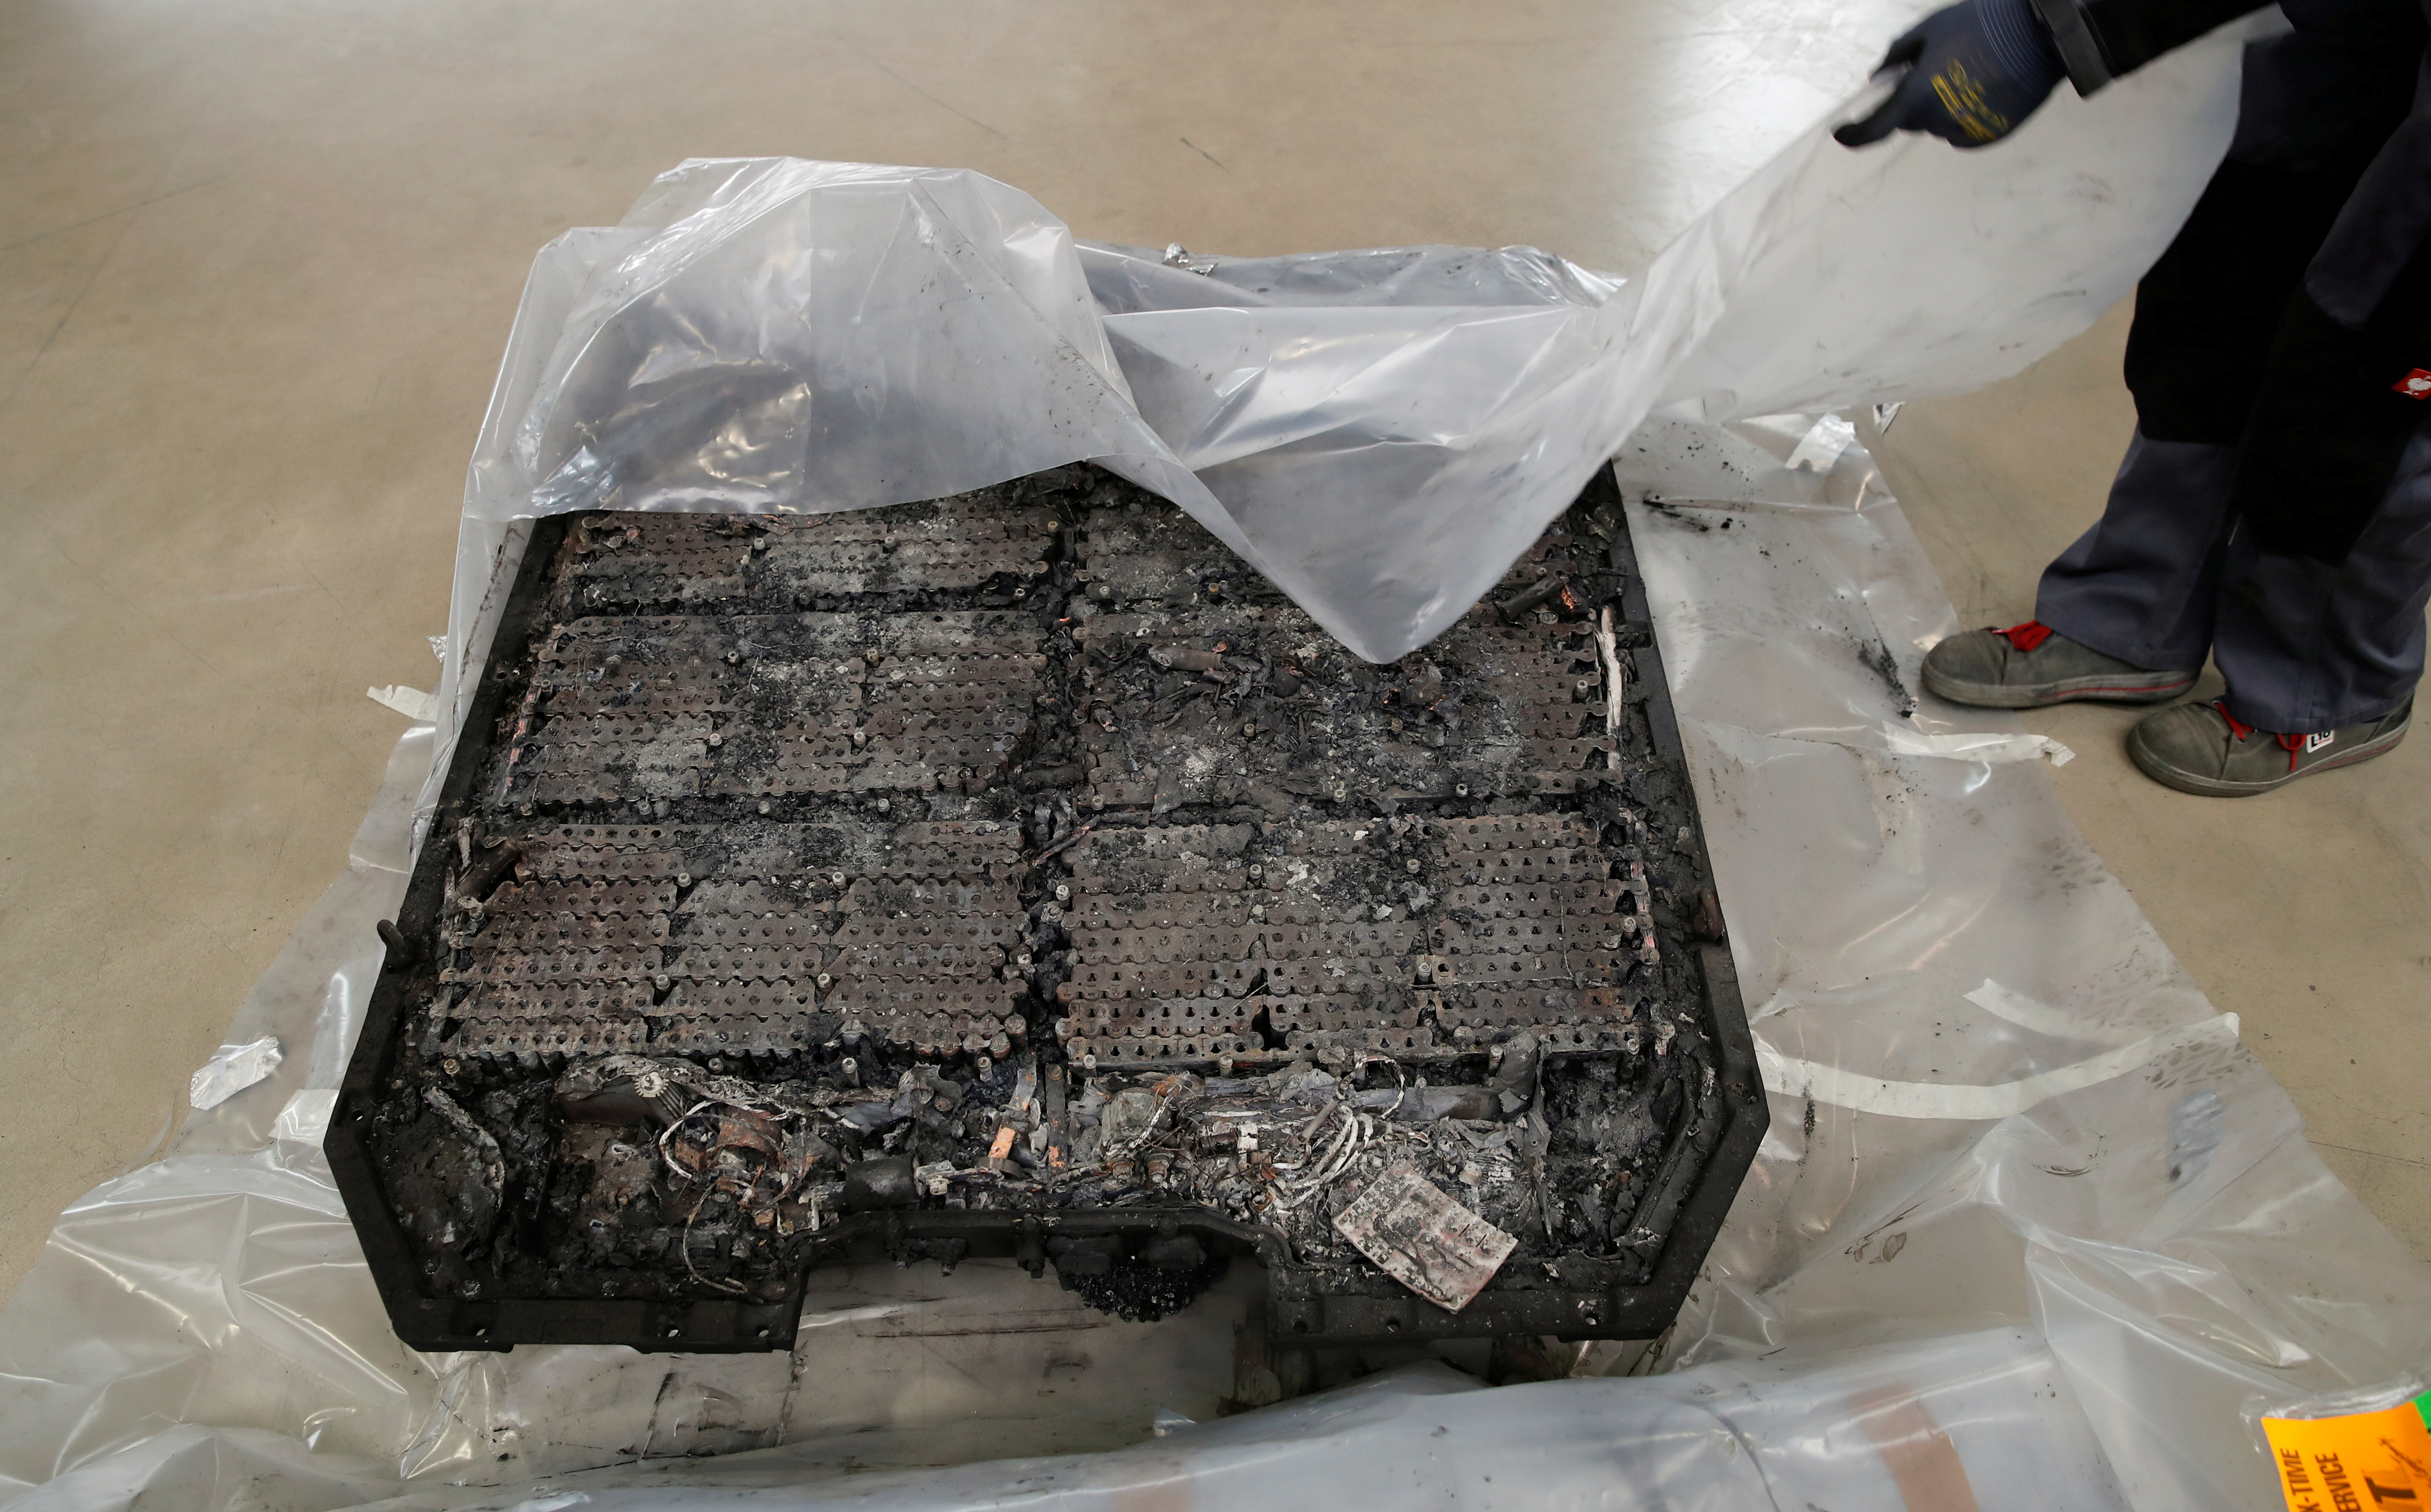 A technician unpacks a completely burned Lithium-ion car battery before its dismantling by the German recycling firm Accurec in Krefeld, Germany, November 16, 2017. REUTERS/Wolfgang Rattay